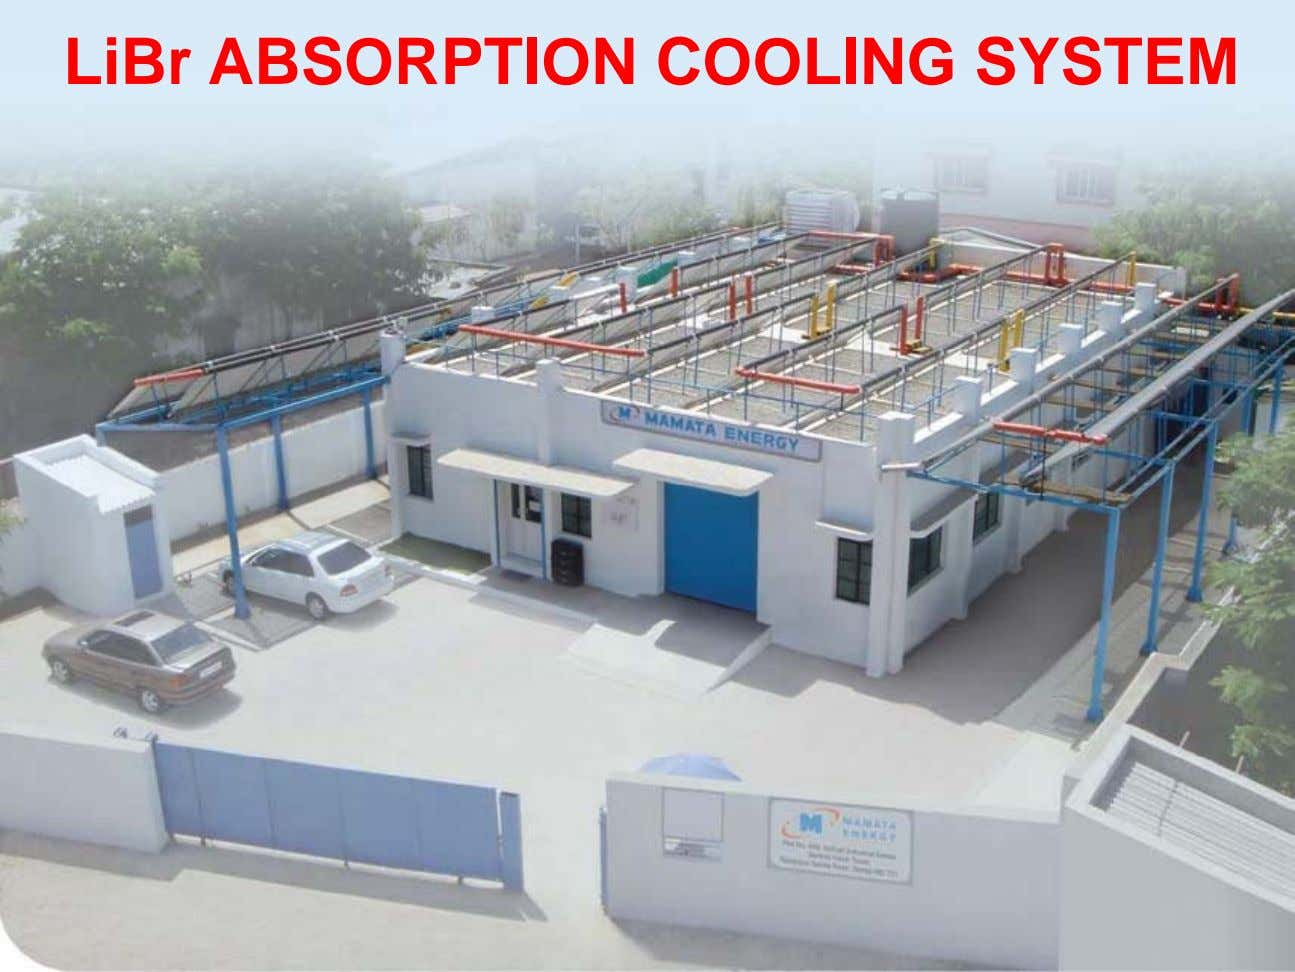 LiBr ABSORPTION COOLING SYSTEM